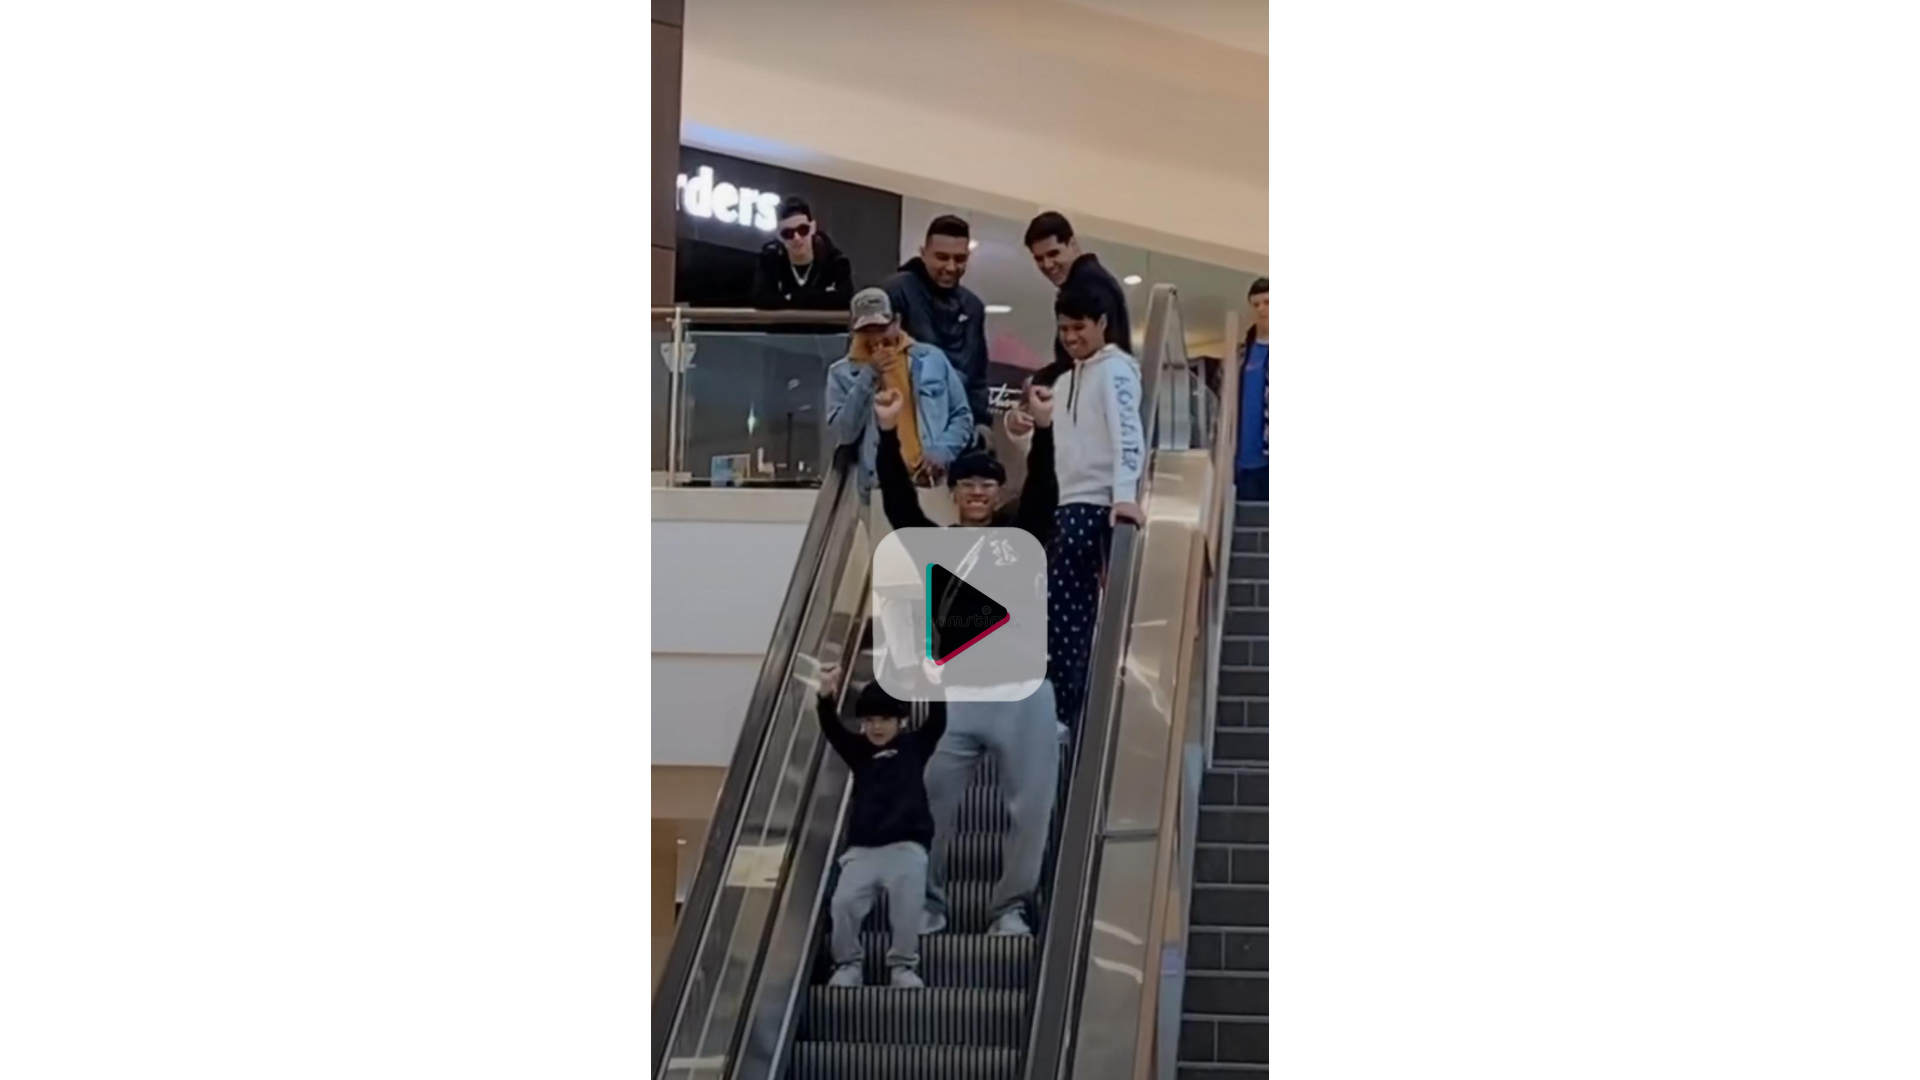 Cool videos from TikTok, which are very popular, in the article about advertising